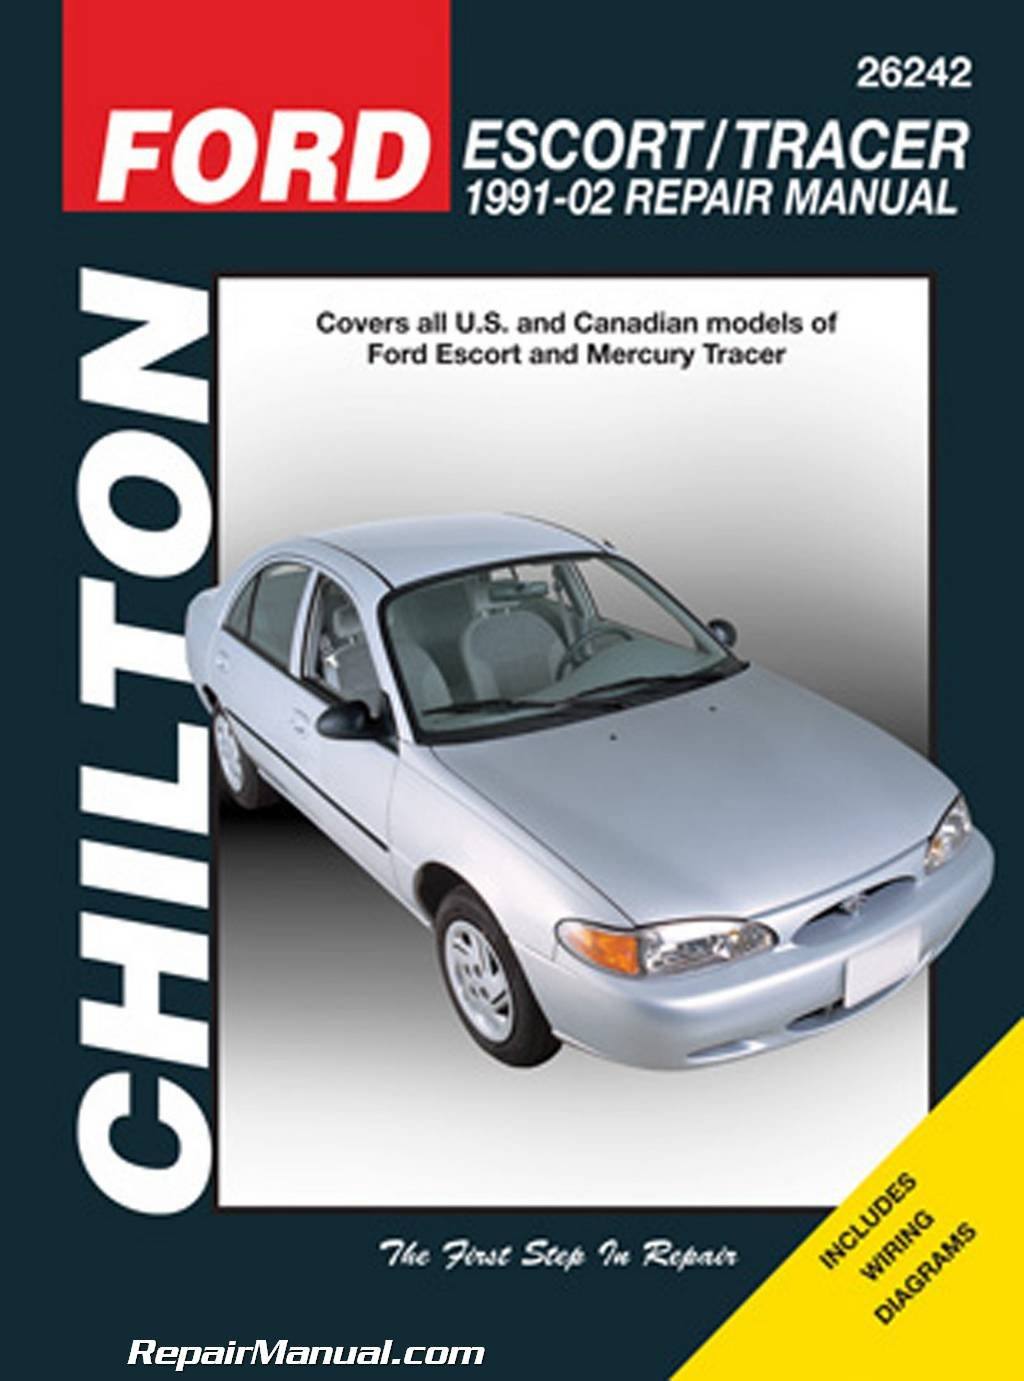 CH26242 Chilton Ford Escort & Mercury Tracer, 1991-2002 Repair Manual:  Manufacturer: Amazon.com: Books